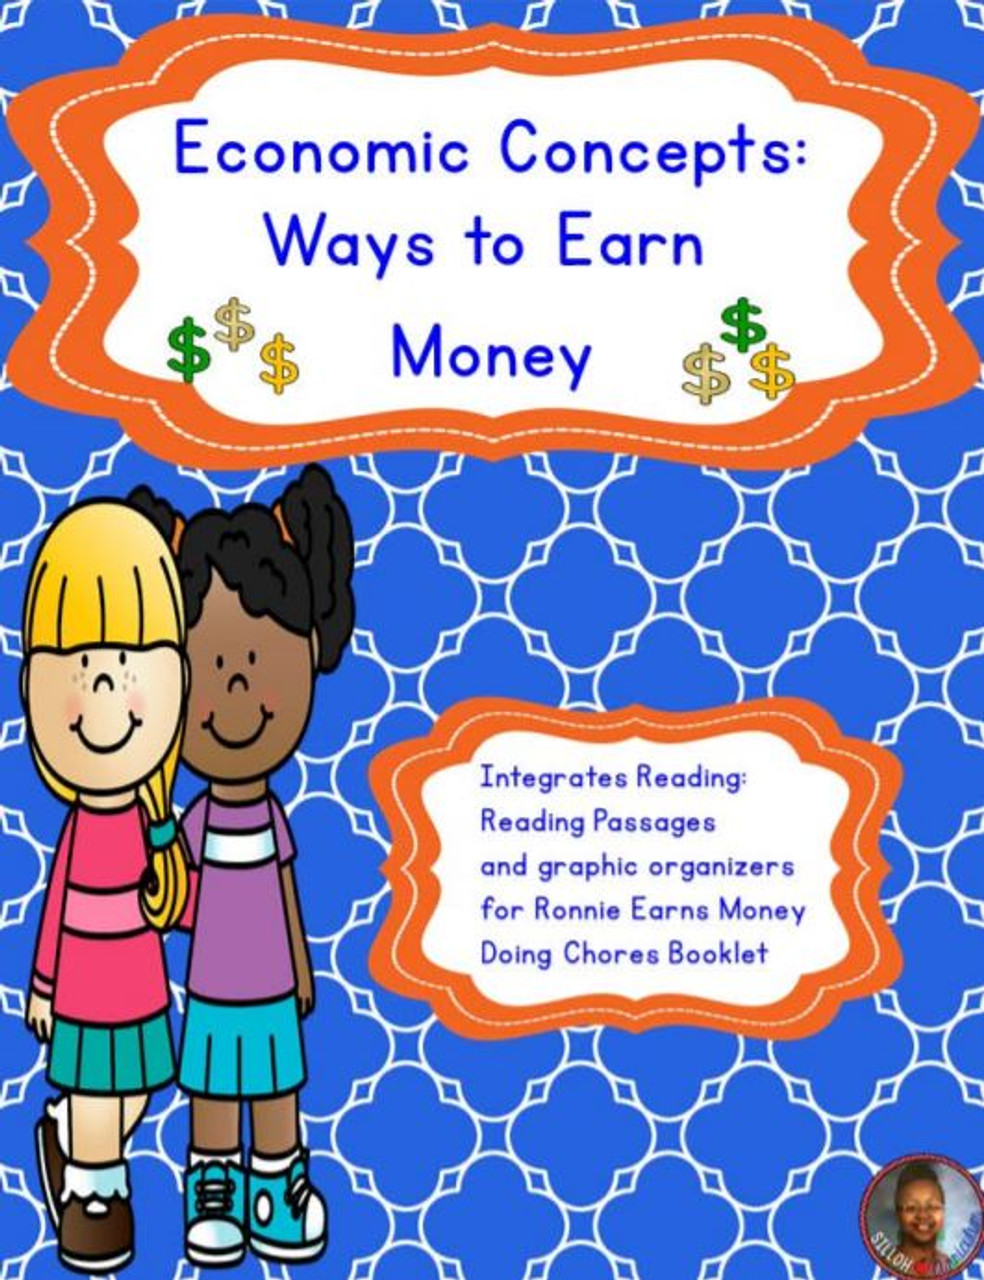 Economic Concepts: Ways to Earn Money